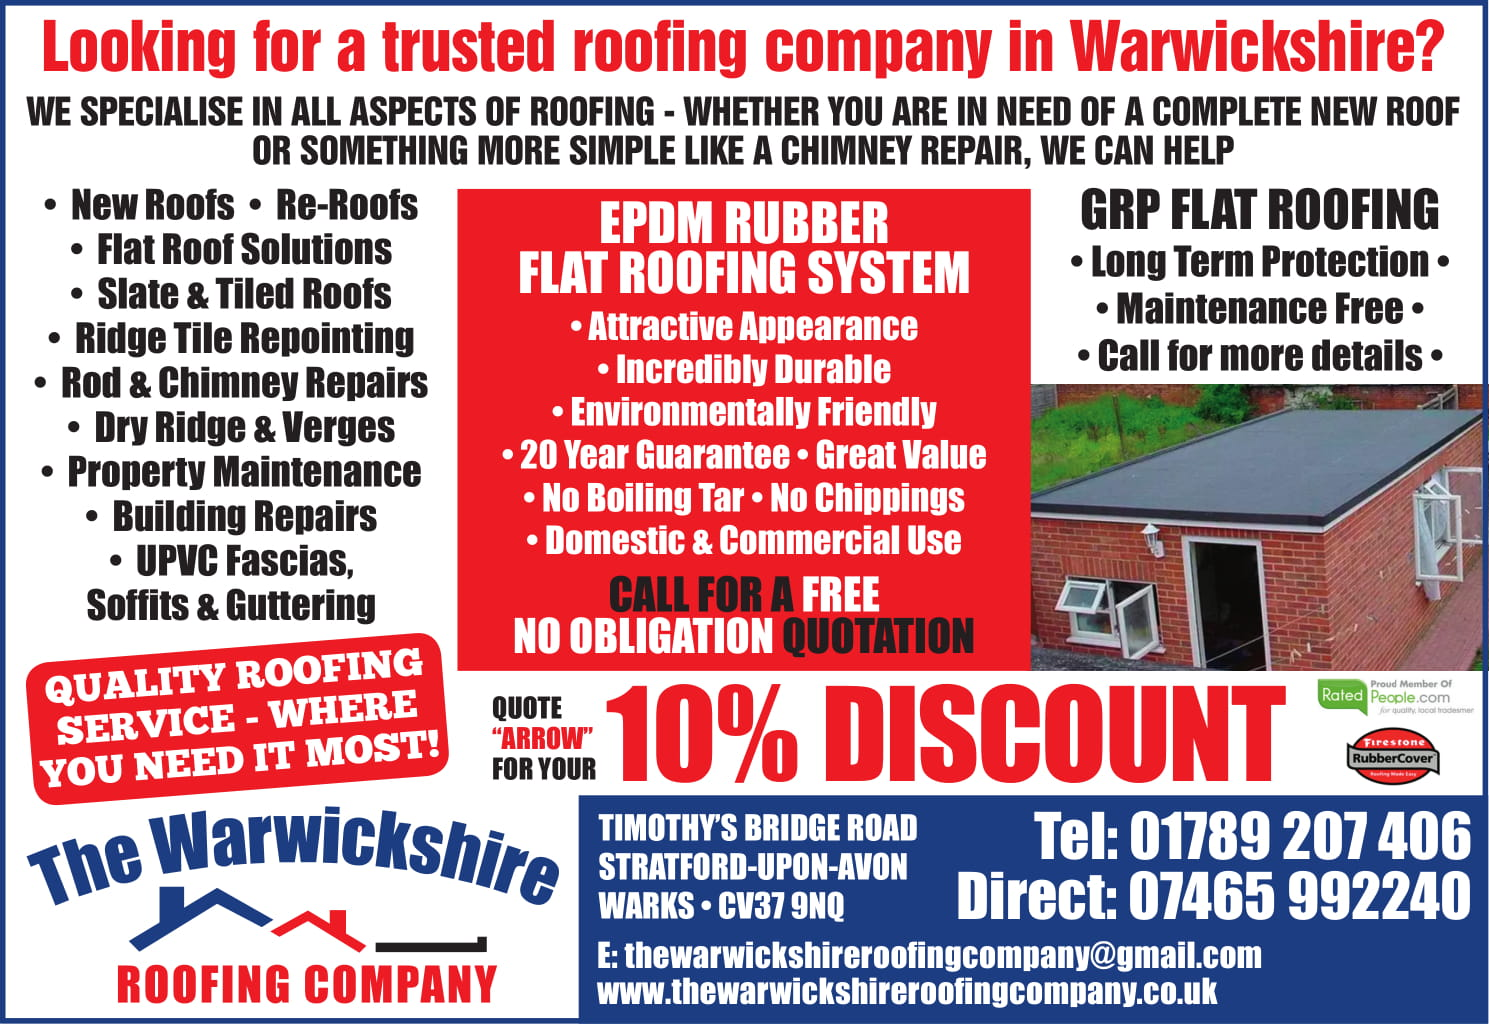 the warwickshire roofing co